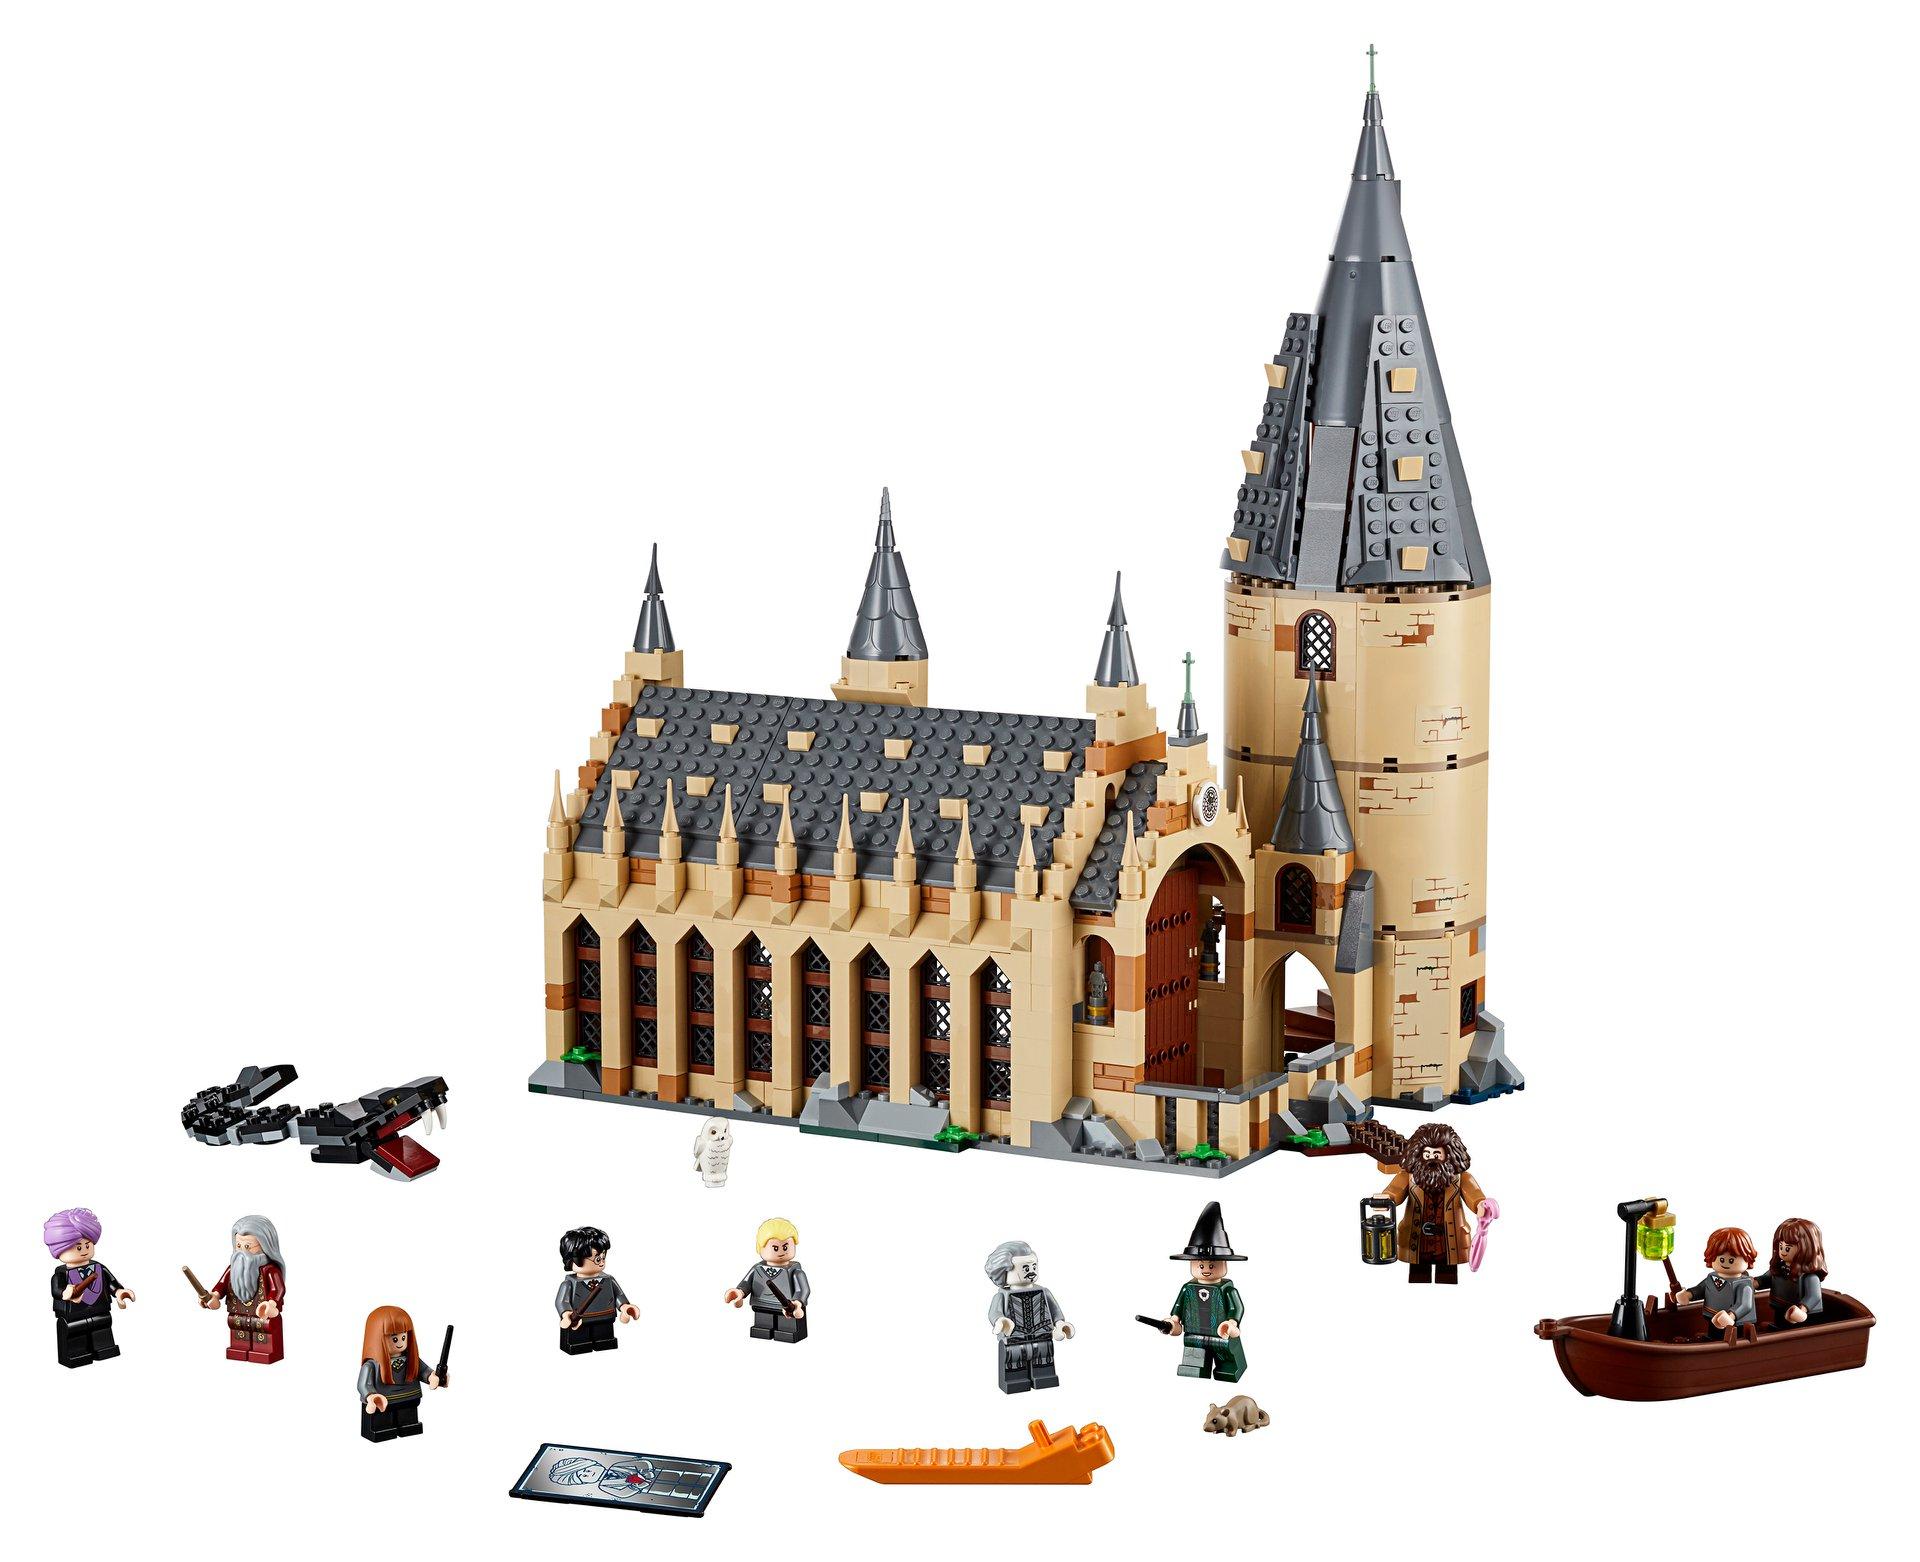 Lego rende omaggio ad Harry Potter con il set di Hogwarts | Collater.al 2